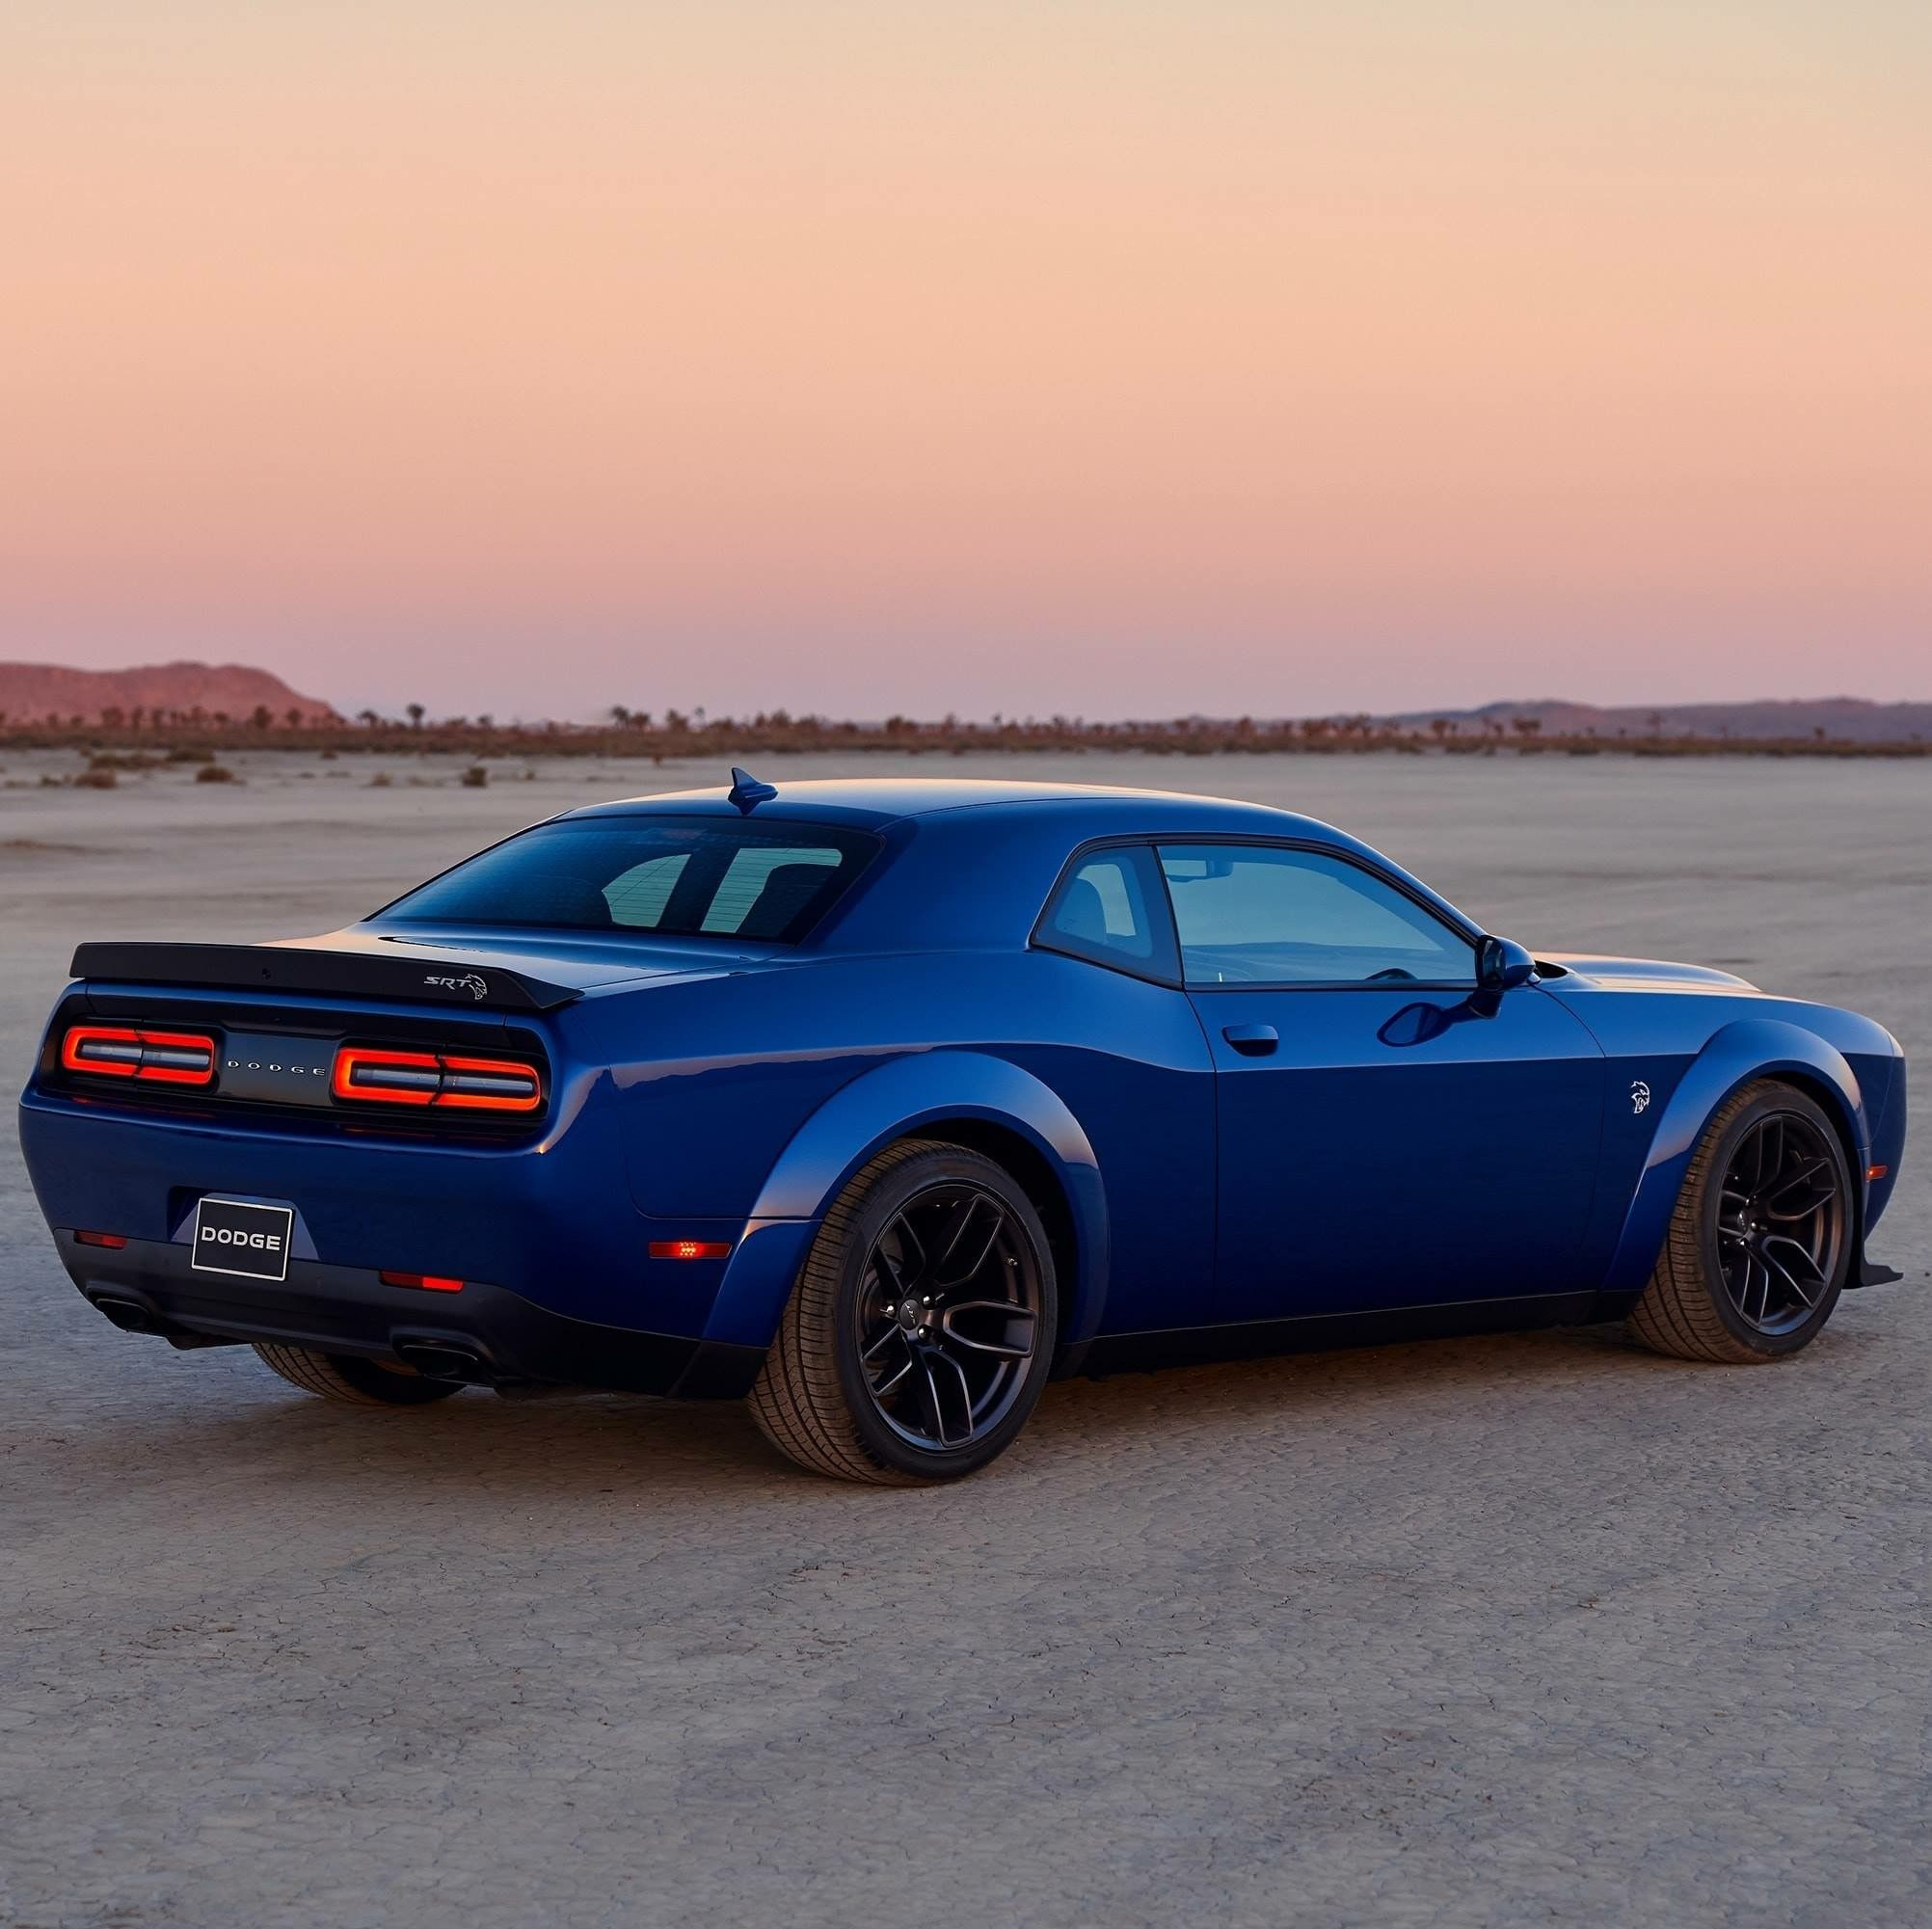 dodge hellcat for sale dallas Dodge Charger Hellcat For Sale Dallas Tx - CHARGER ABOUT